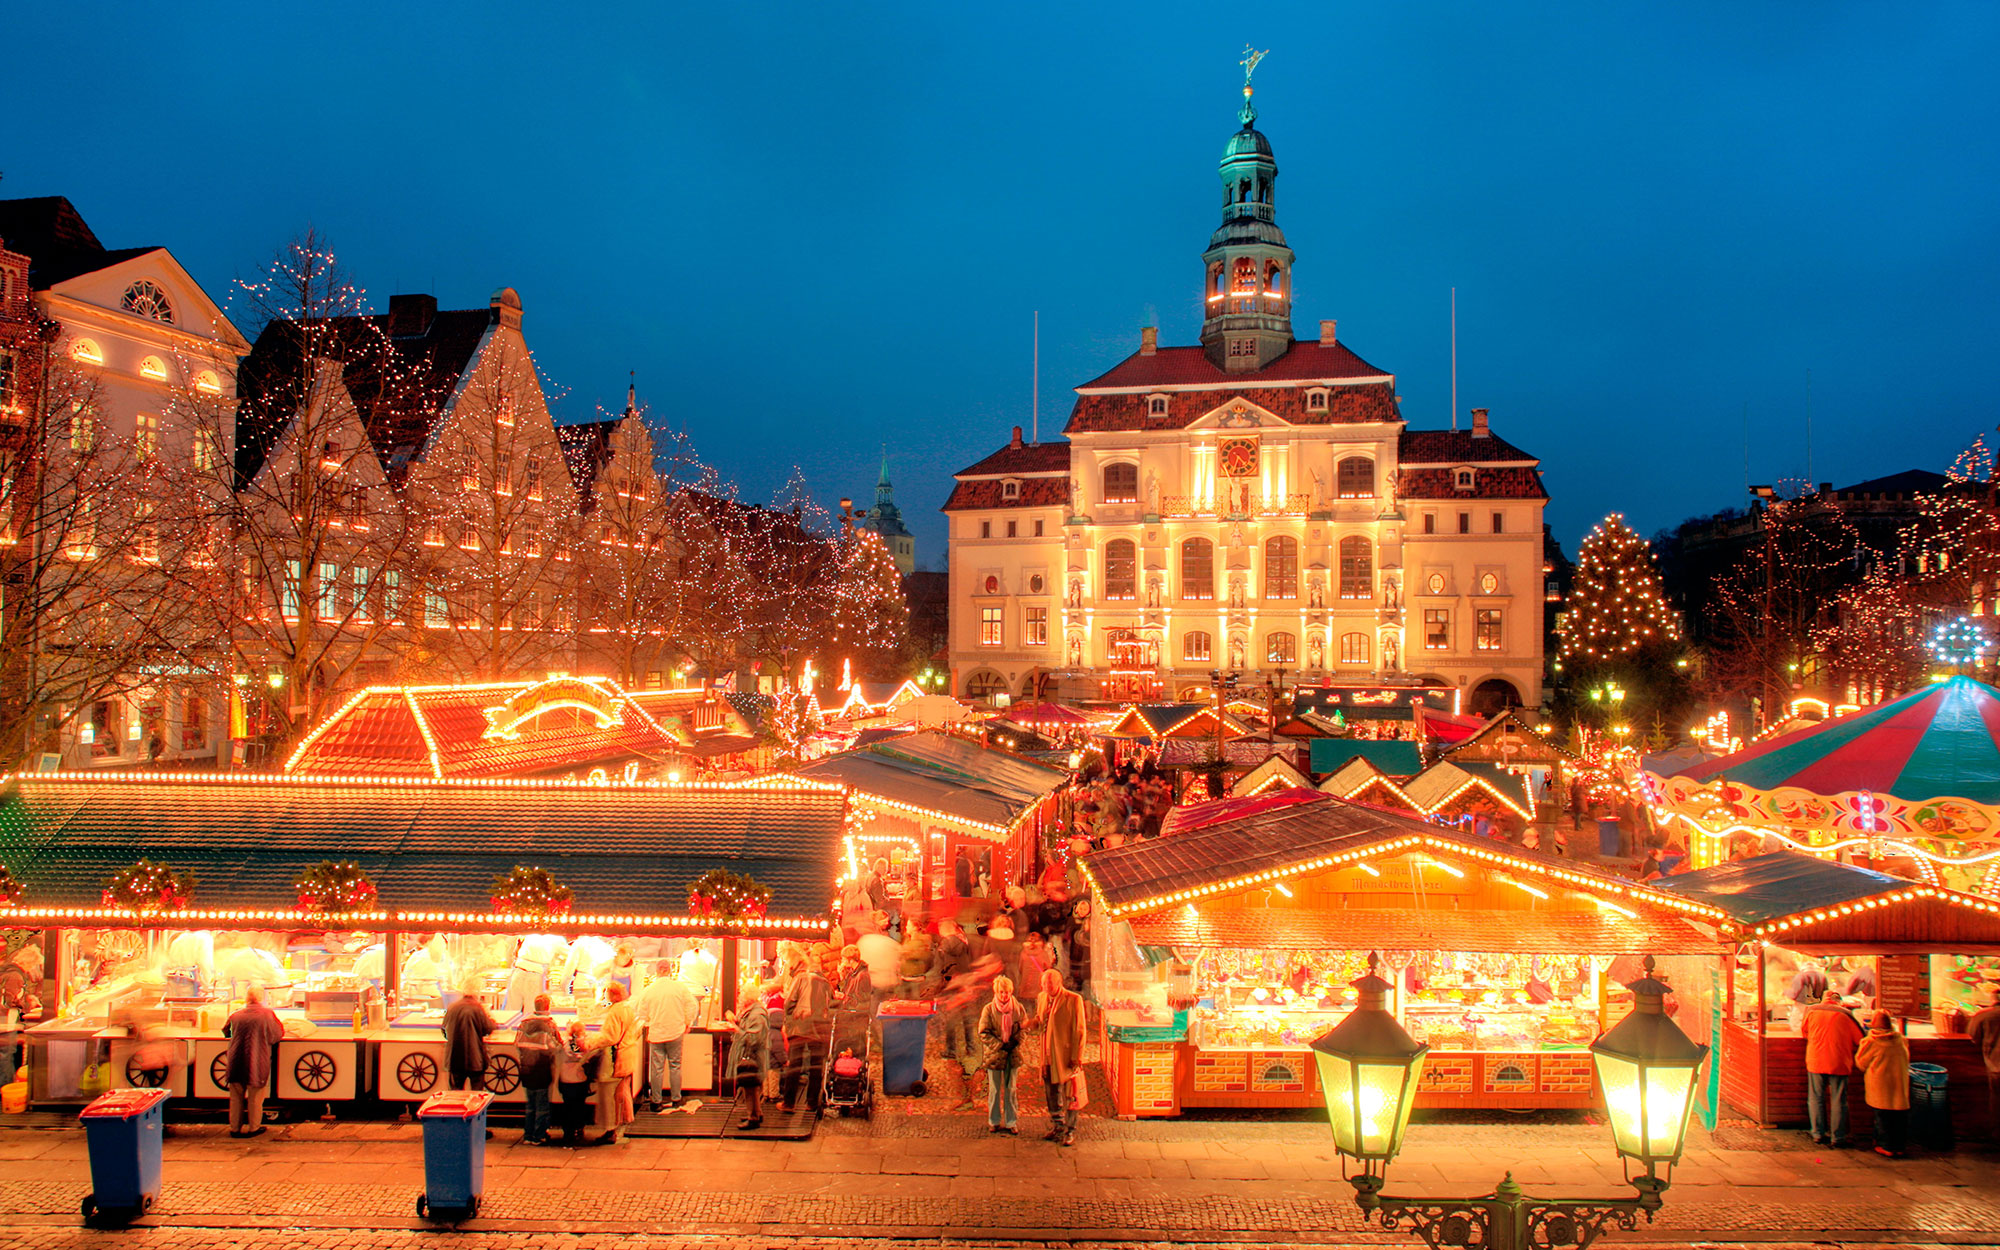 B1R442 Christmas Market in front of the town hall of Lueneburg in Northern Germany. Image shot 2007. Exact date unknown.